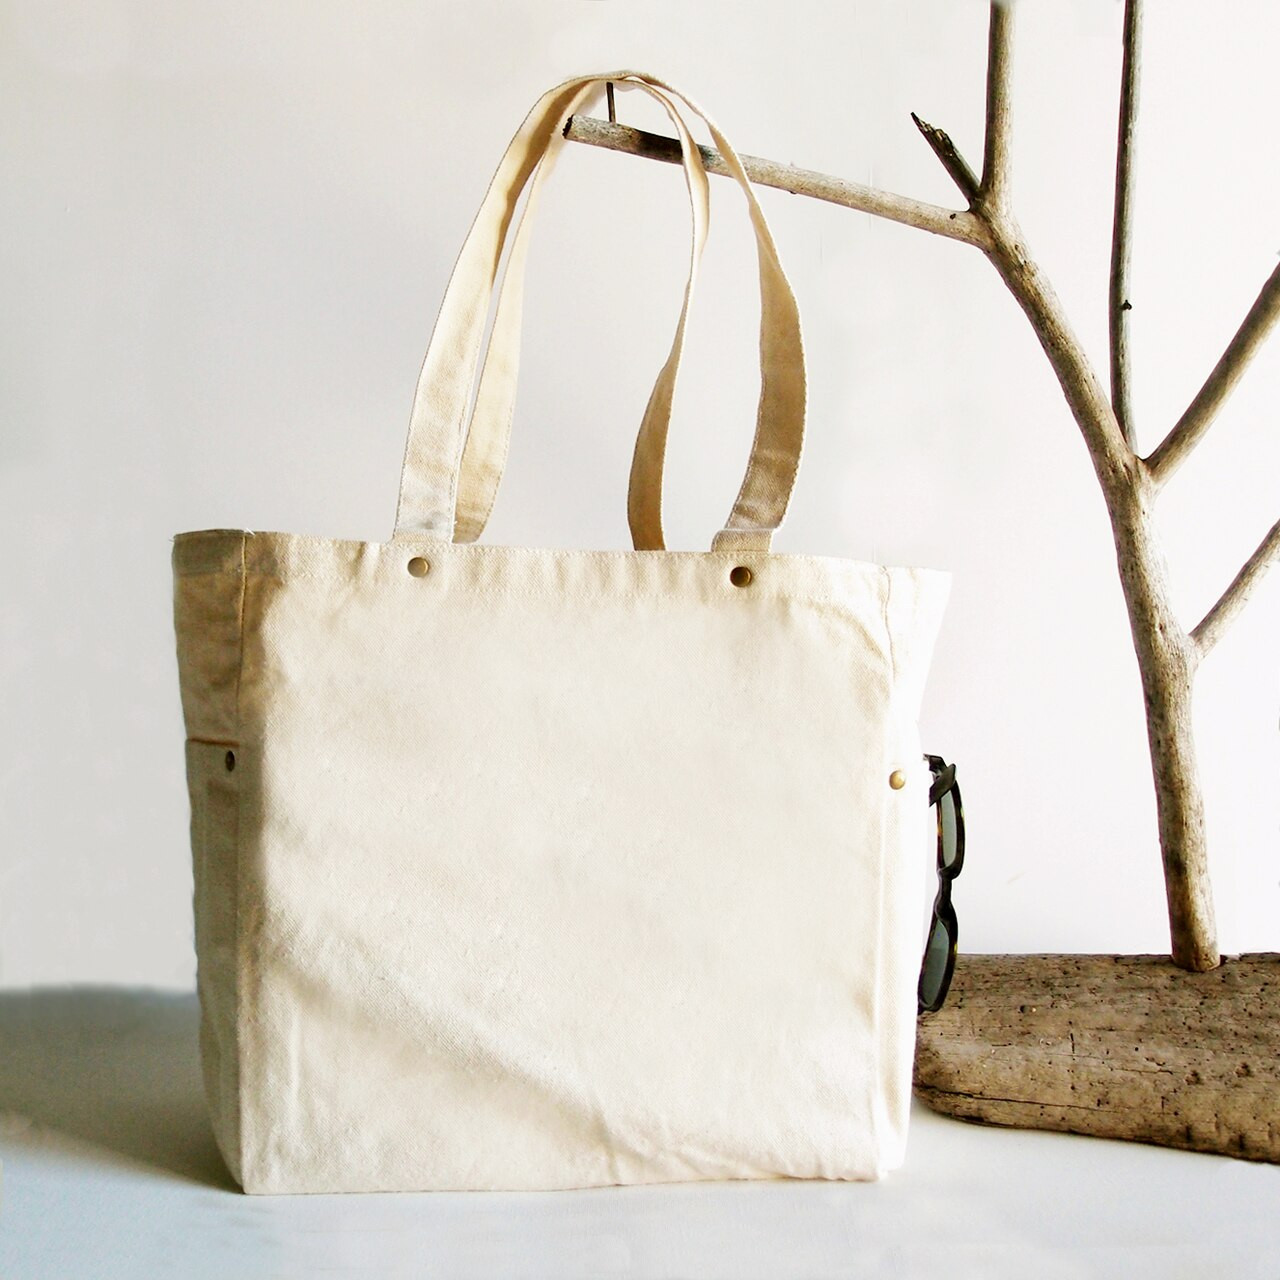 Wholesale Canvas Tote Bags, Washed Canvas Tote Bag with Side Pockets Natural B798-71 | Packaging Decor